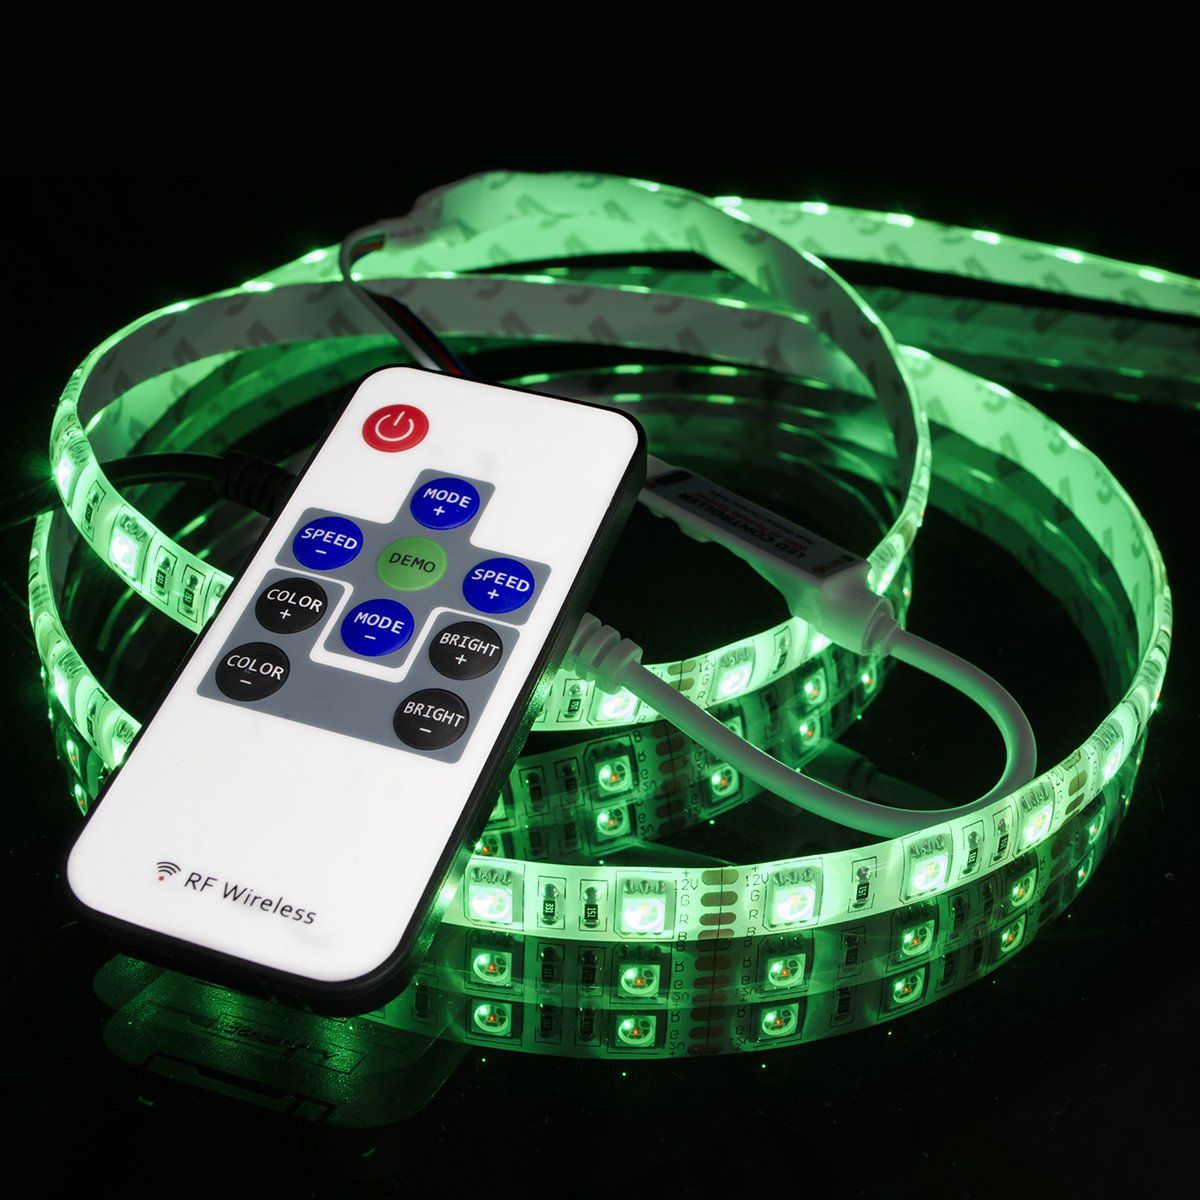 R108 rgb multicolor led light strip controller rf remote r108 rgb multicolor led light strip controller rf remote hitlights mozeypictures Choice Image